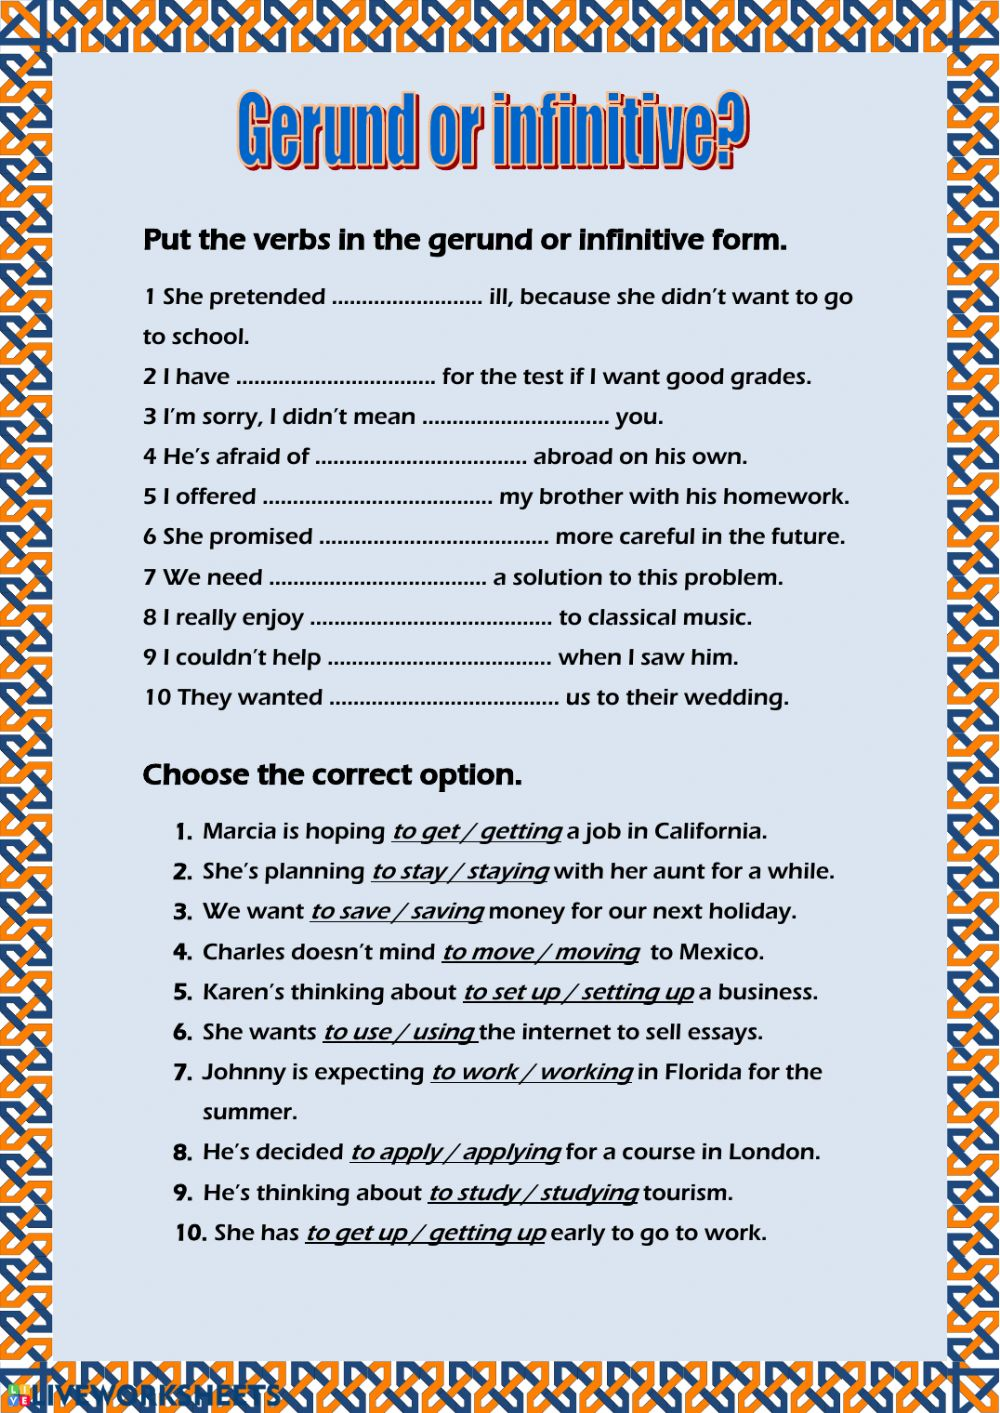 medium resolution of Infinitives Exercises With Answers For Grade 8 - Exercise Poster